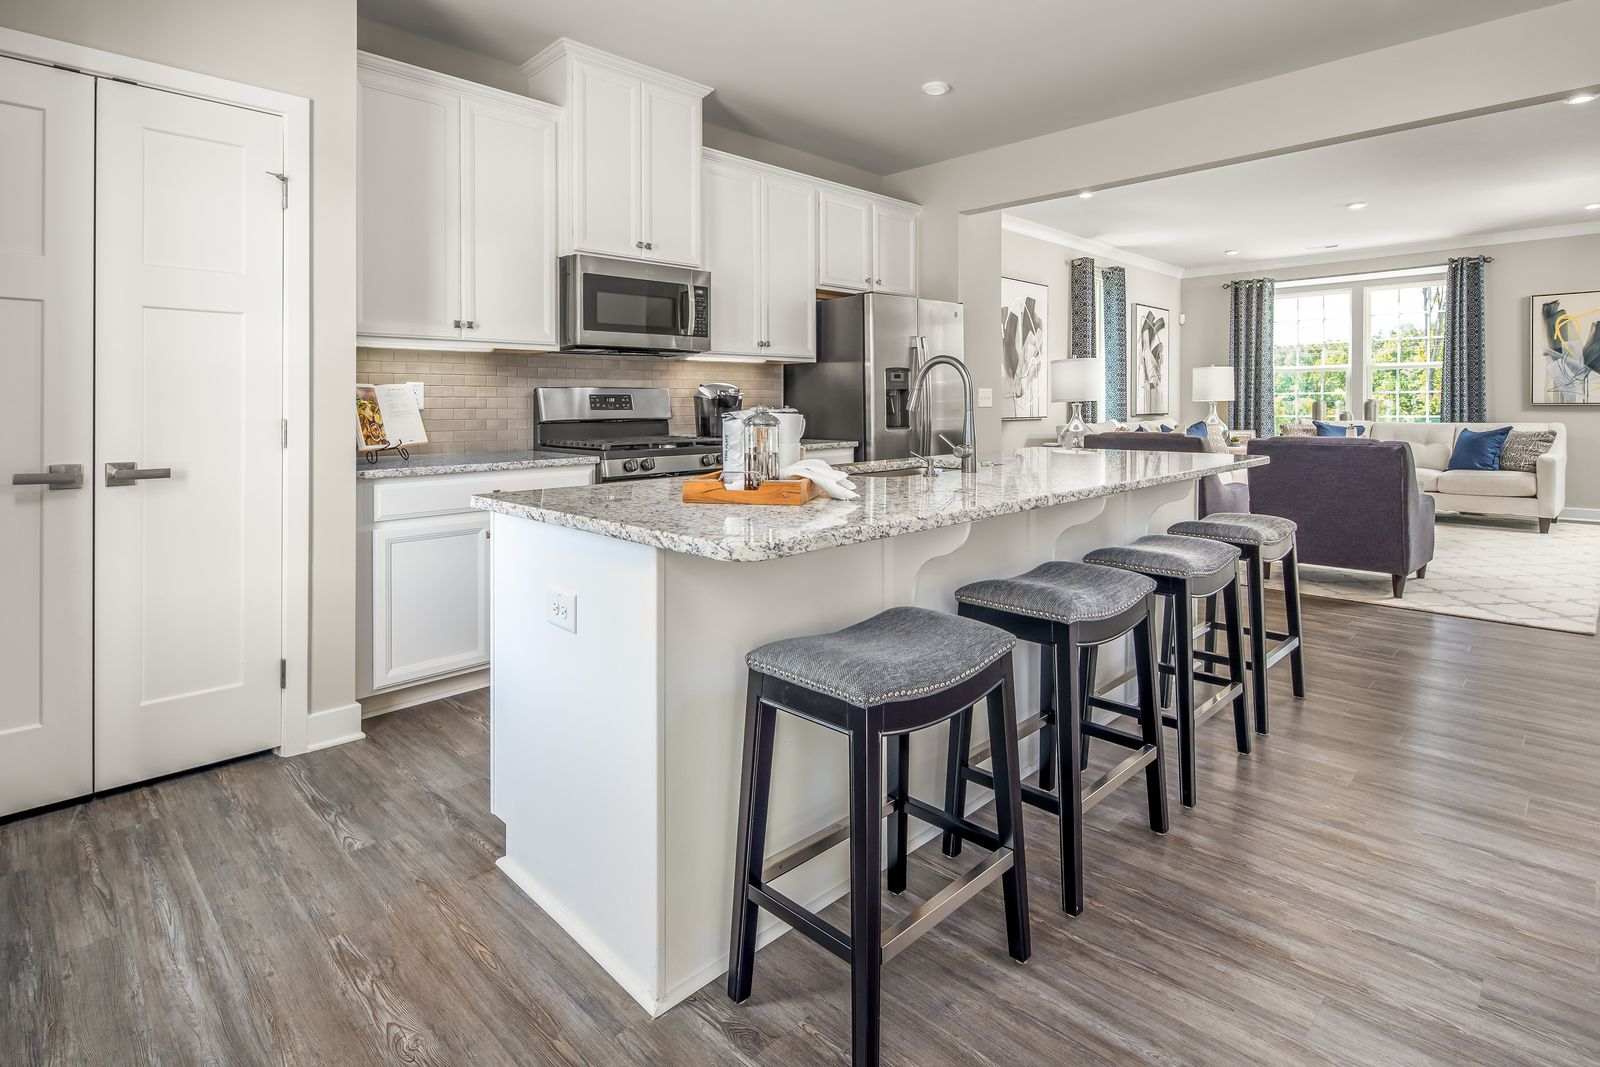 VALLEY RUN - 2-CAR GARAGE TOWNHOMES HAVE ARRIVED TO FREDERICKSBURG FROM THE MID $300S!:The lowest pricedgarage townhomes in the area with everything you need included in the base price - just 3 miles from downtown Fredericksburg & 1 mile to 95!Schedule your visit today.